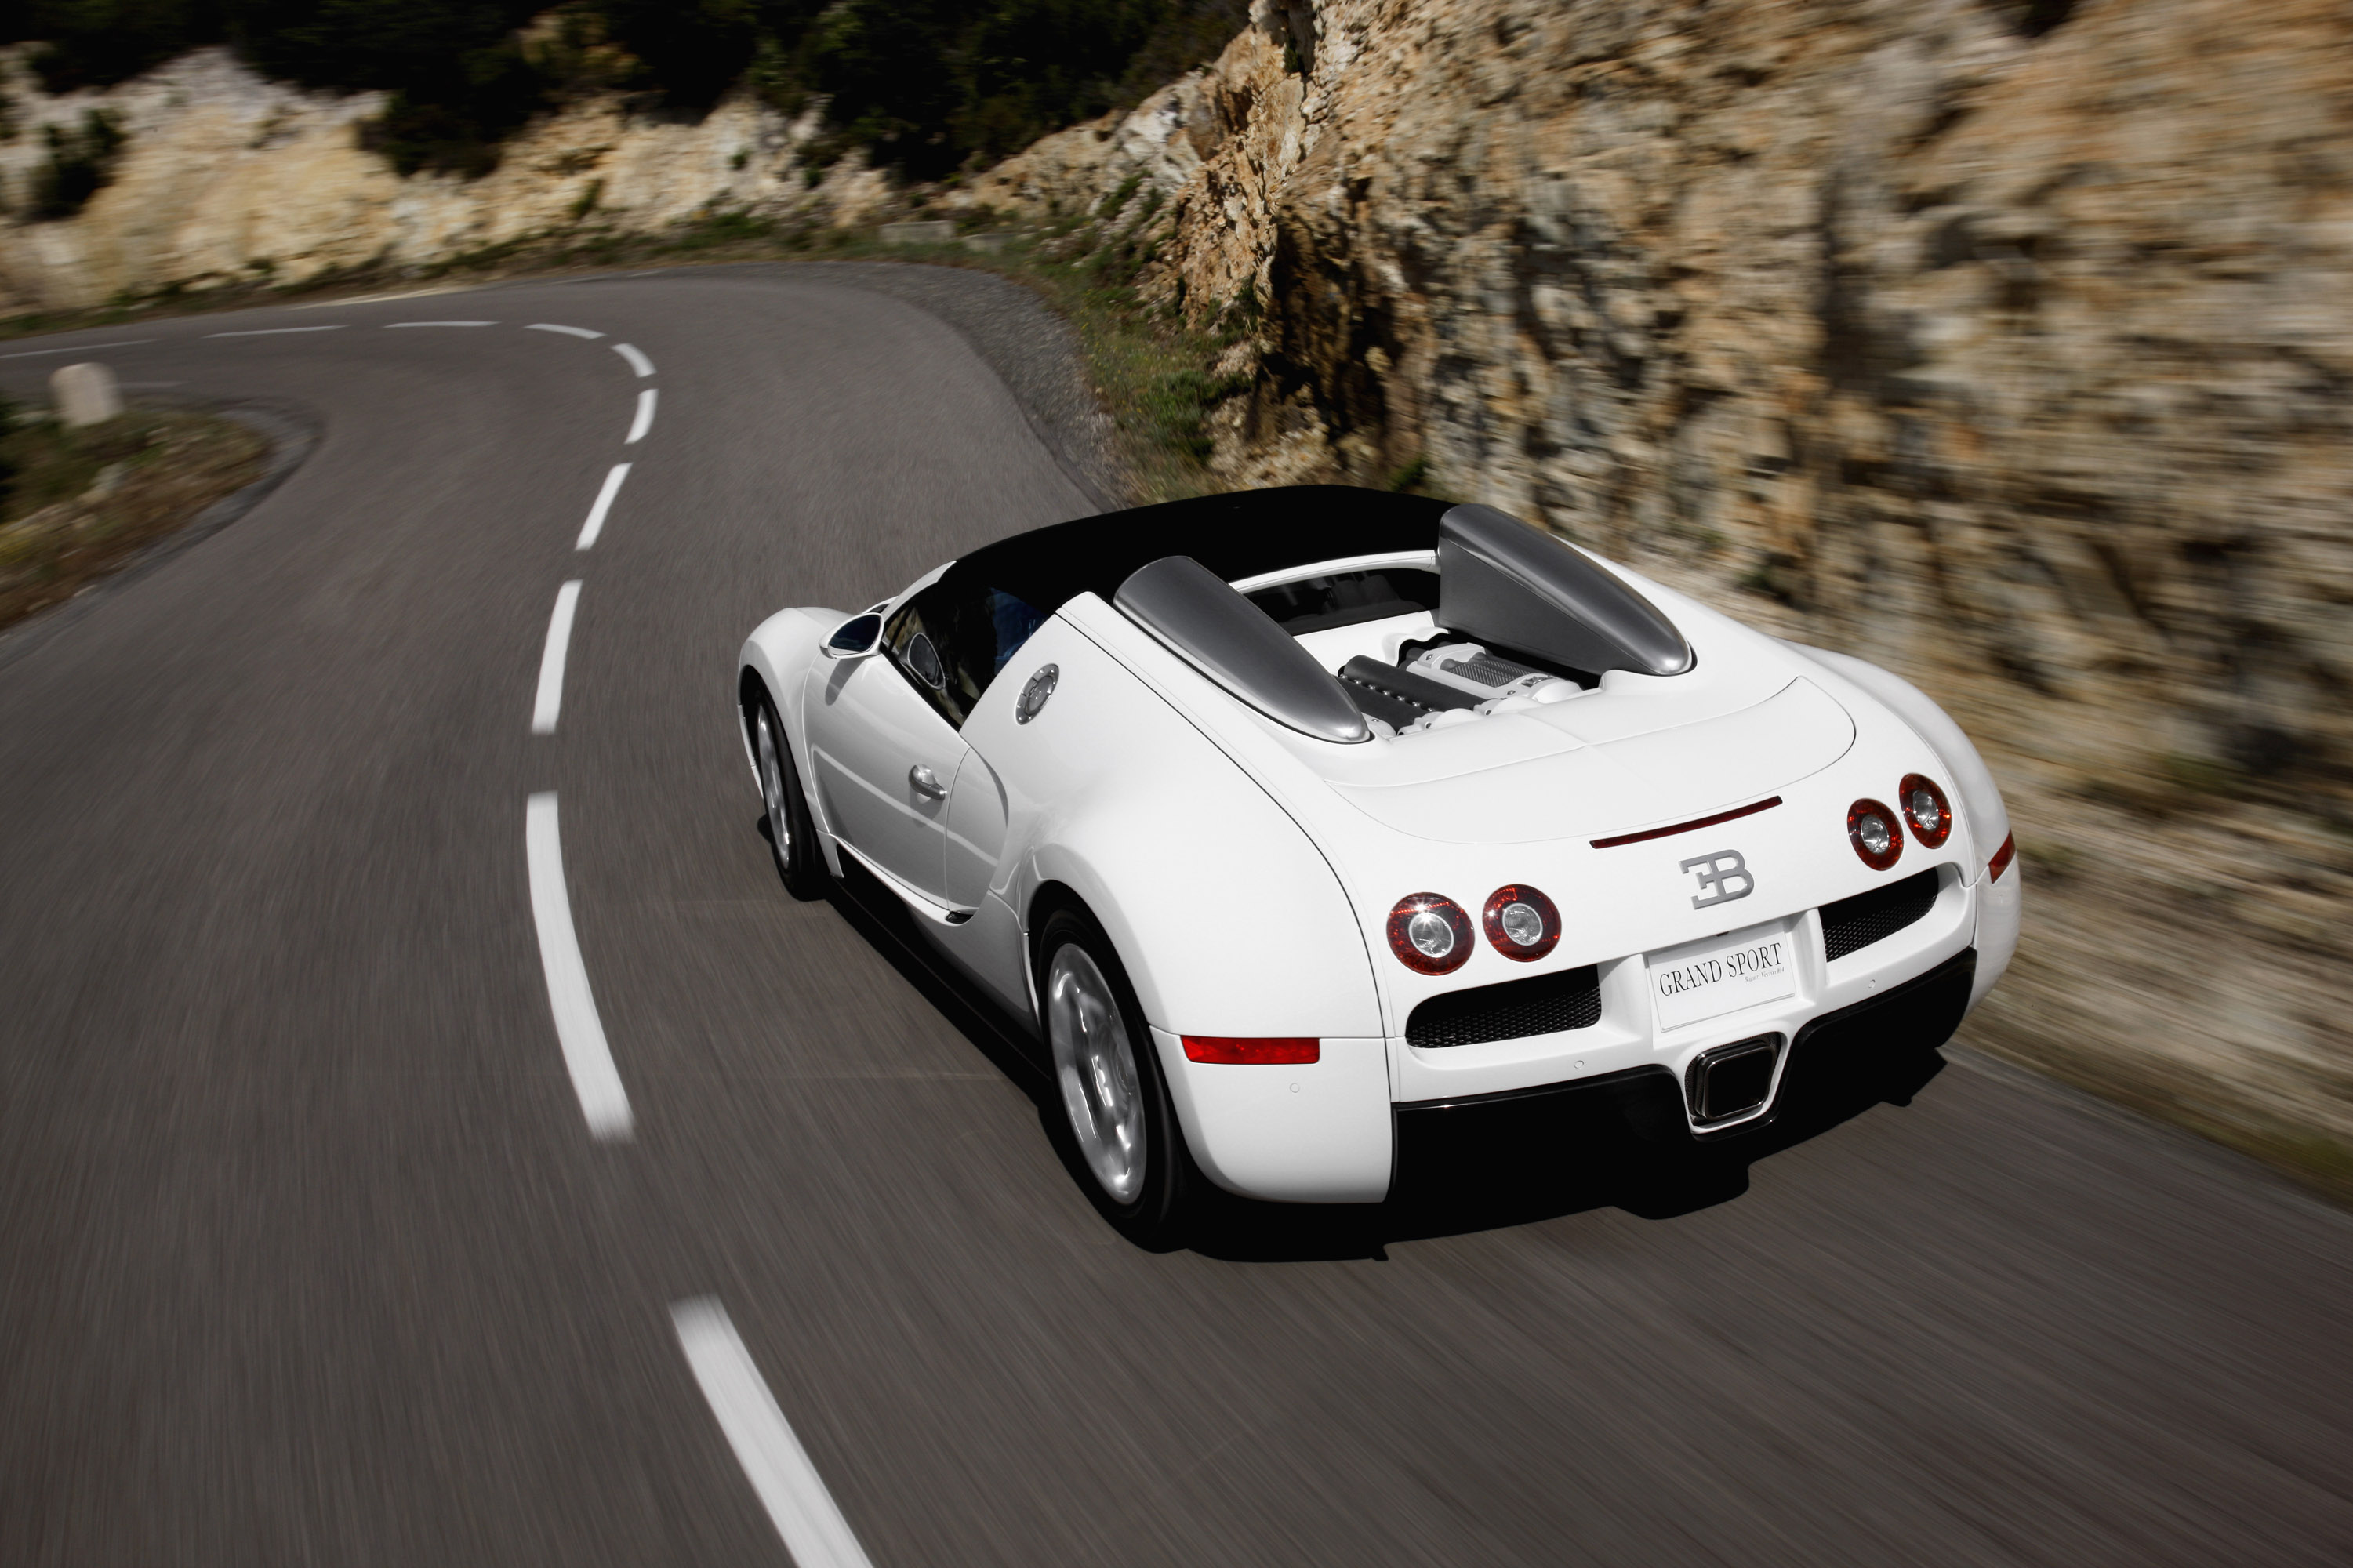 bugatti-veyron-164-grand-sport-05 Exciting Bugatti Veyron Cost for Oil Change Cars Trend